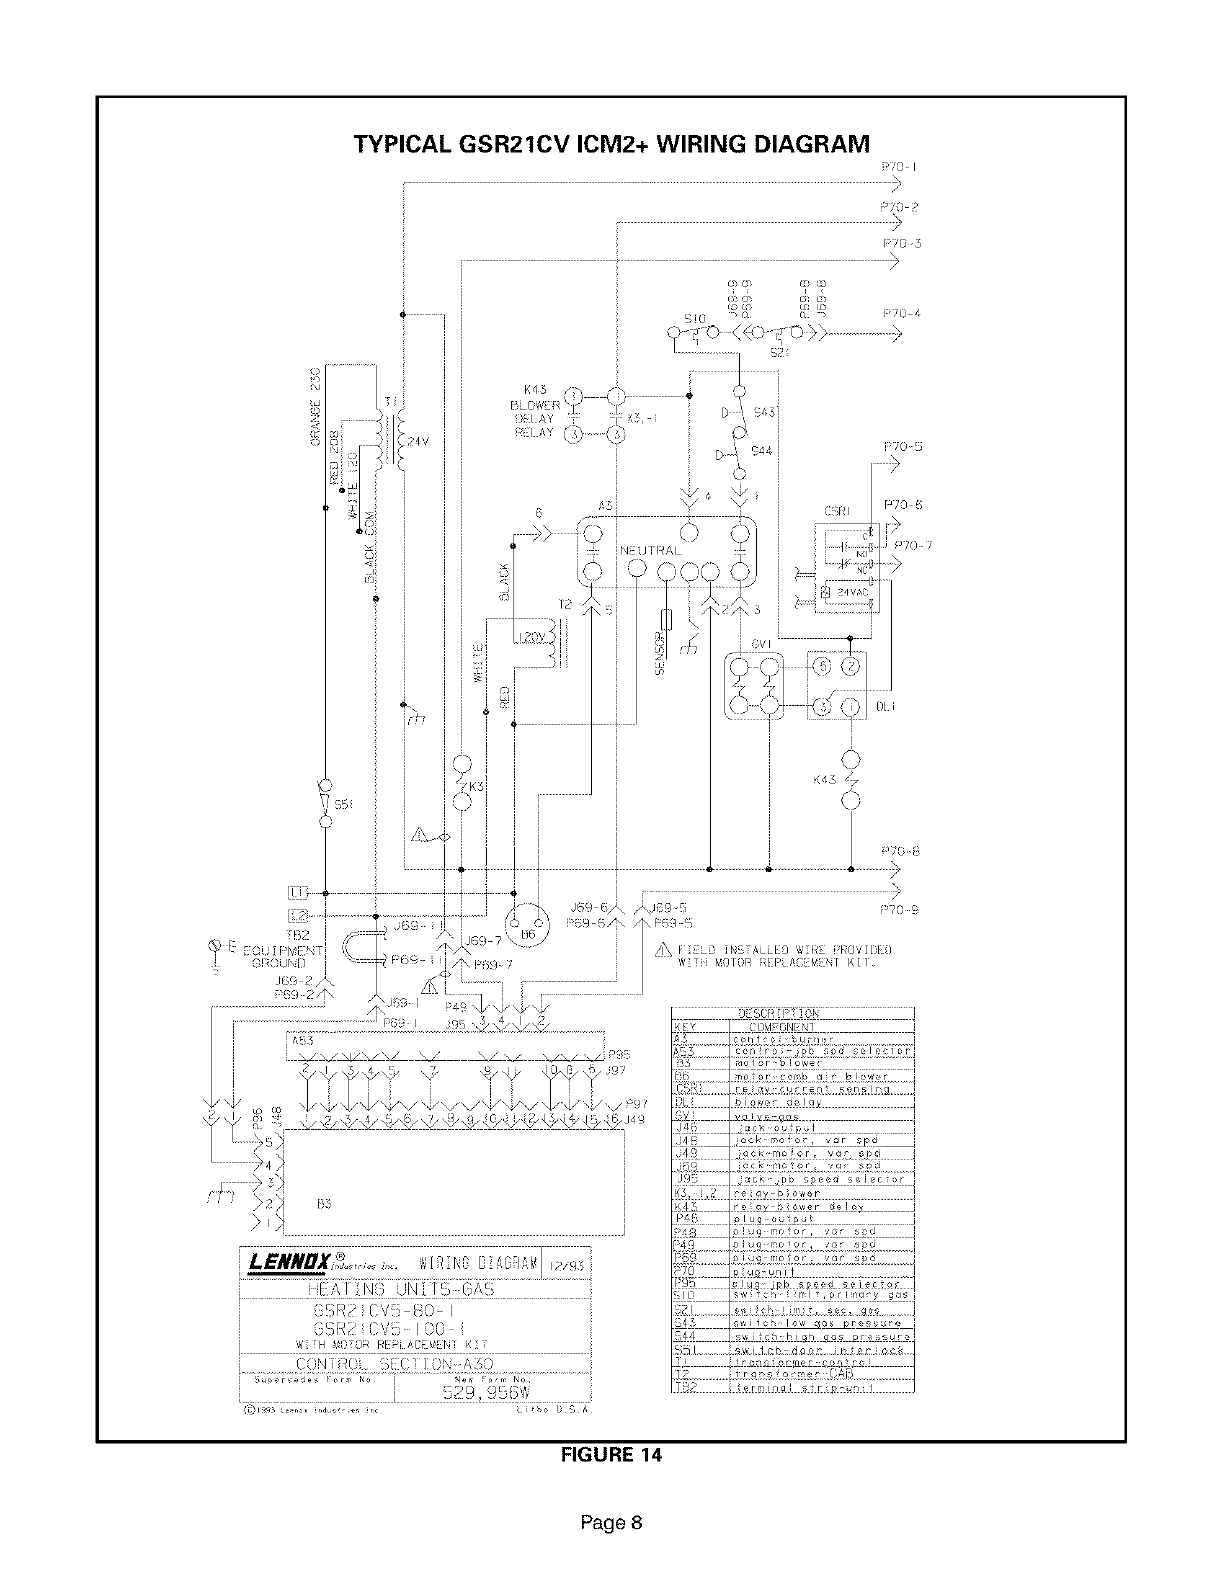 LENNOX Furnace/Heater, Gas Manual L08A6040